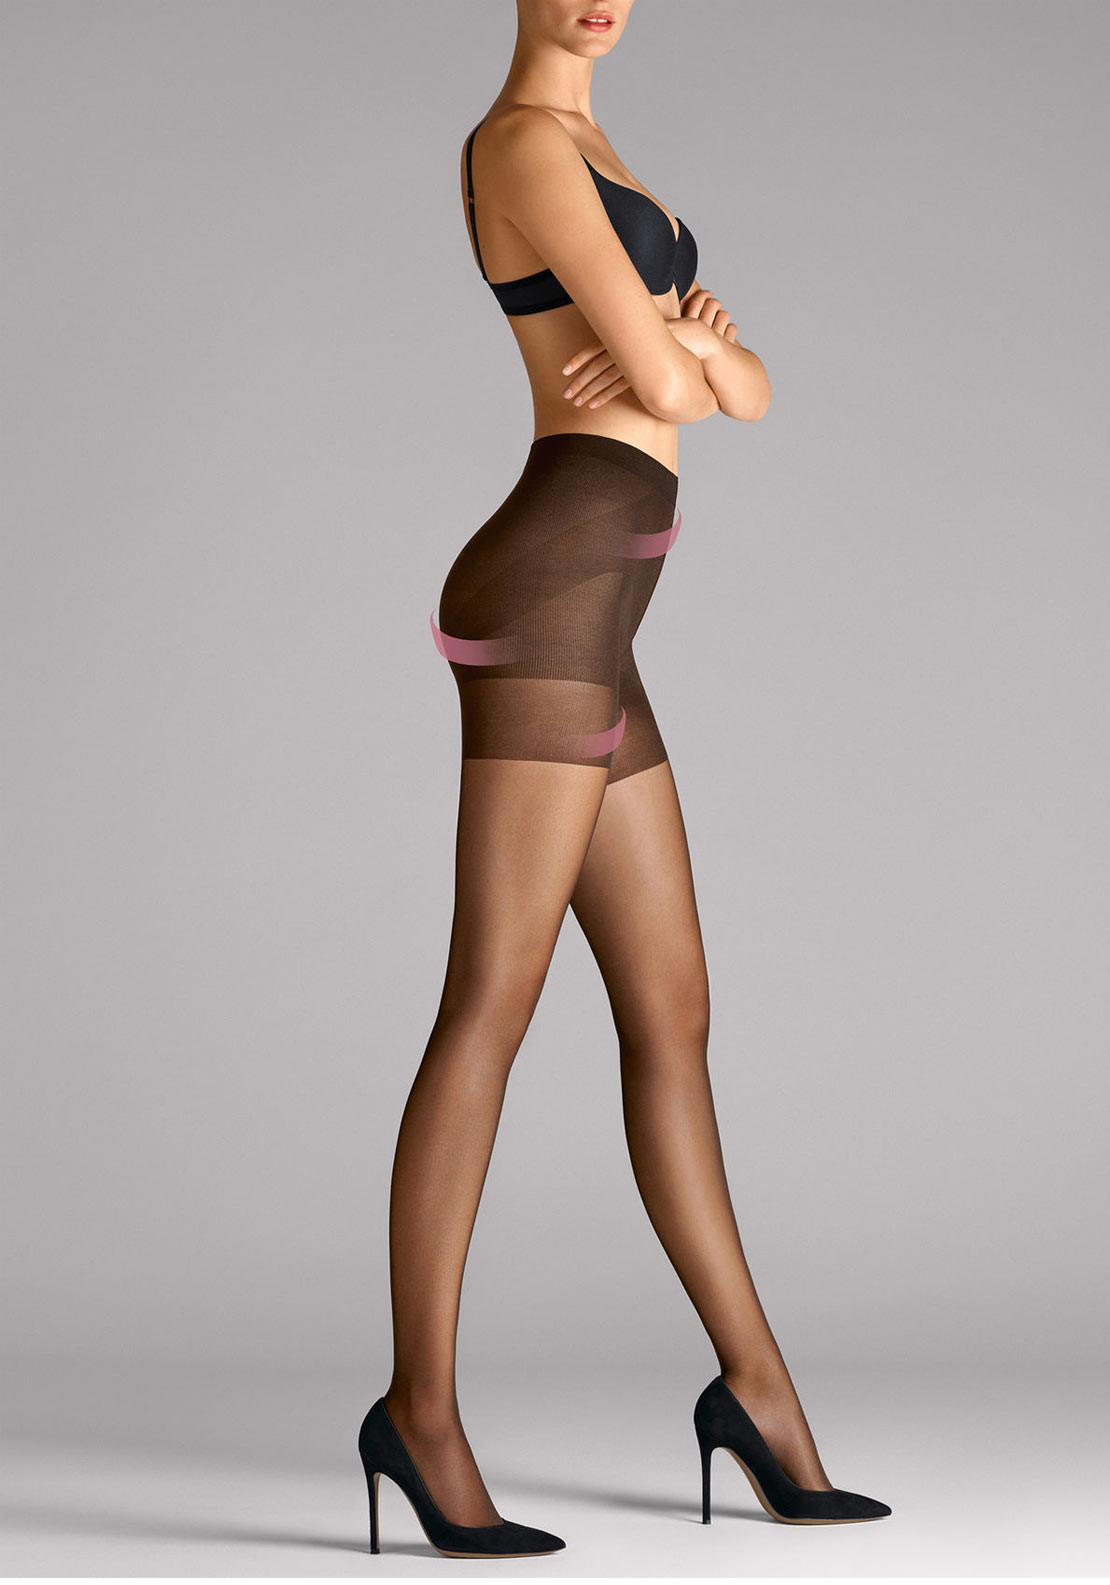 Wolford Synergy 20 Push Up Sheer Tights, Gobi